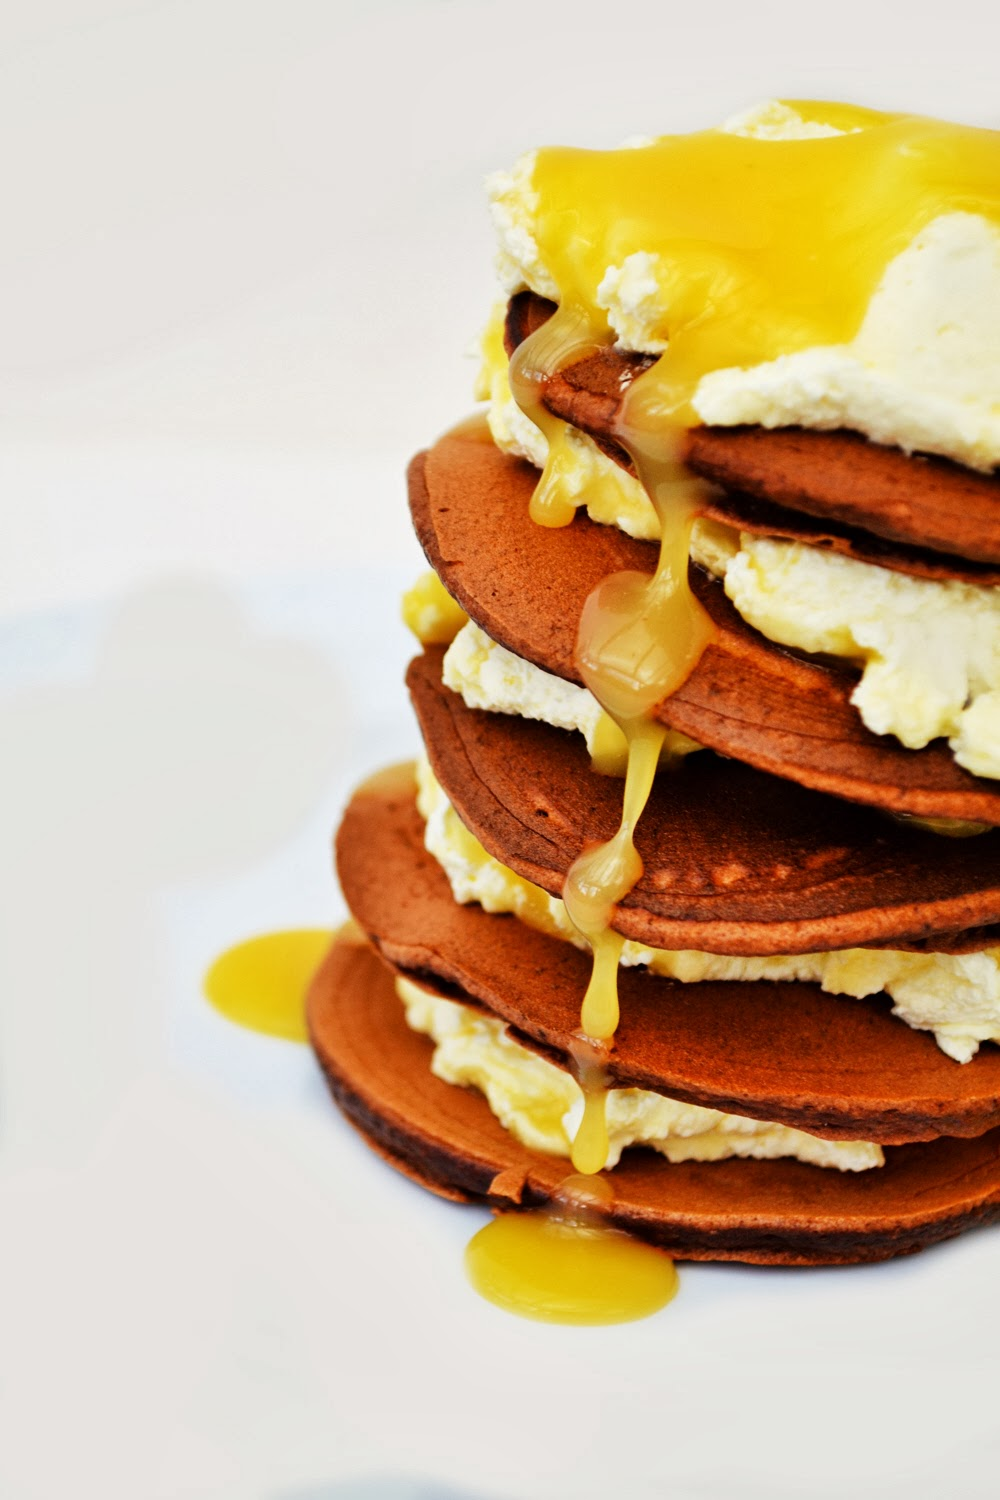 Chocolate and Lemon Curd Pancakes